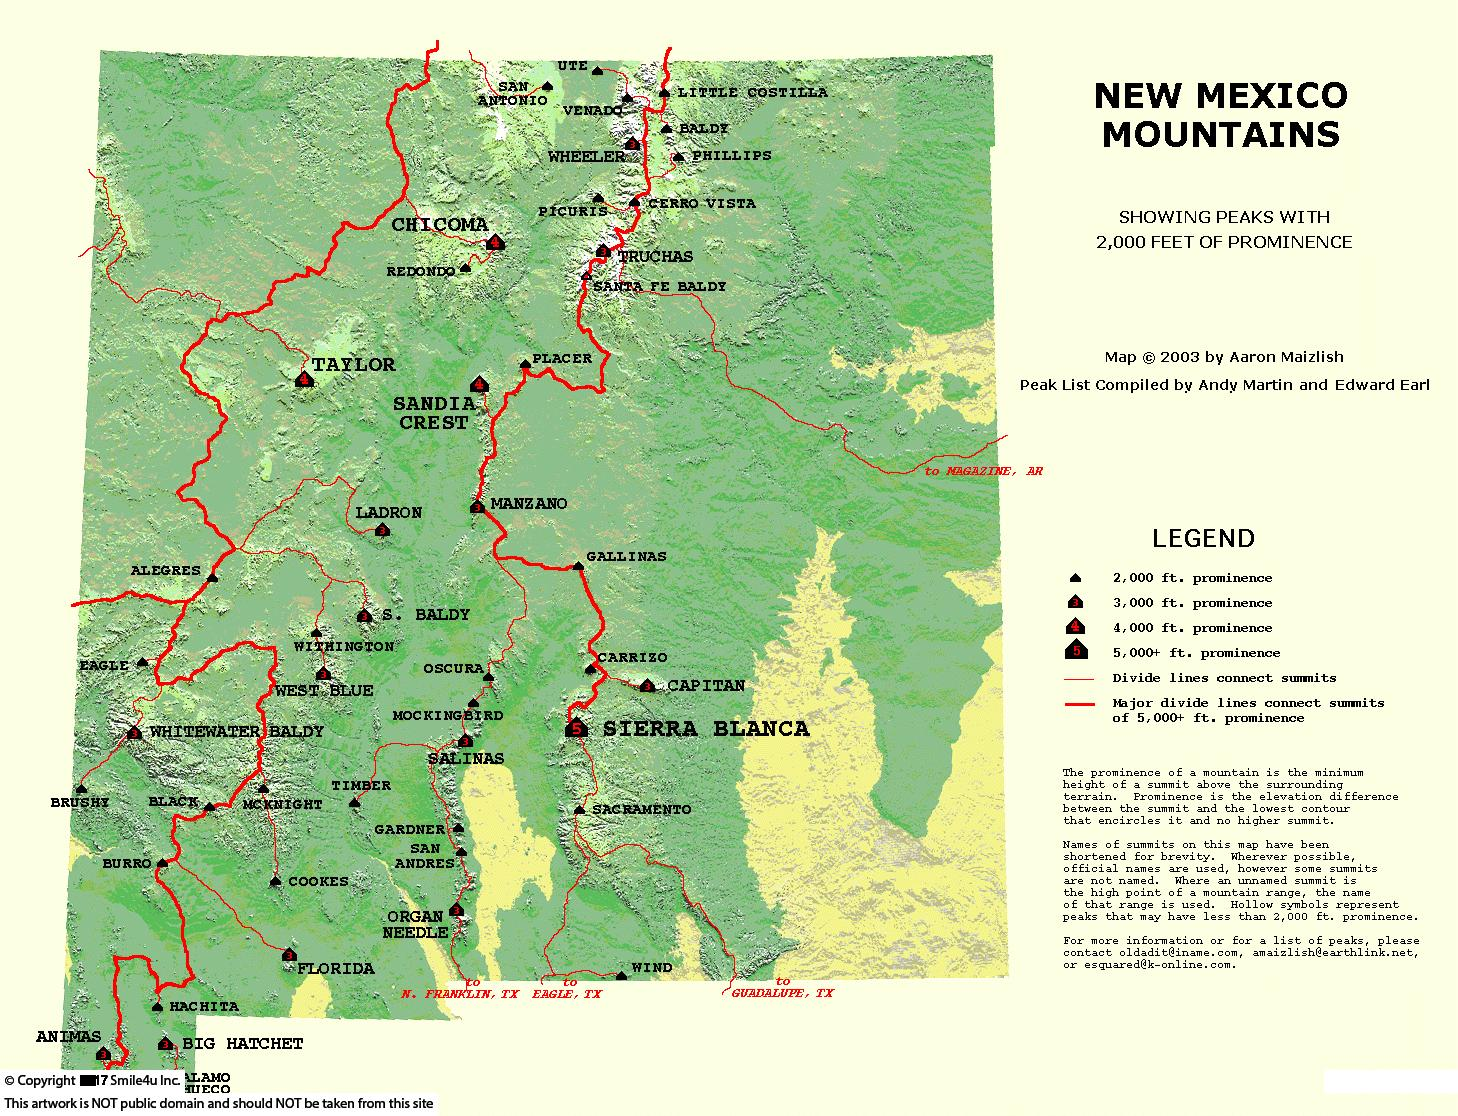 148763_watermarked_newmexicosummits.png